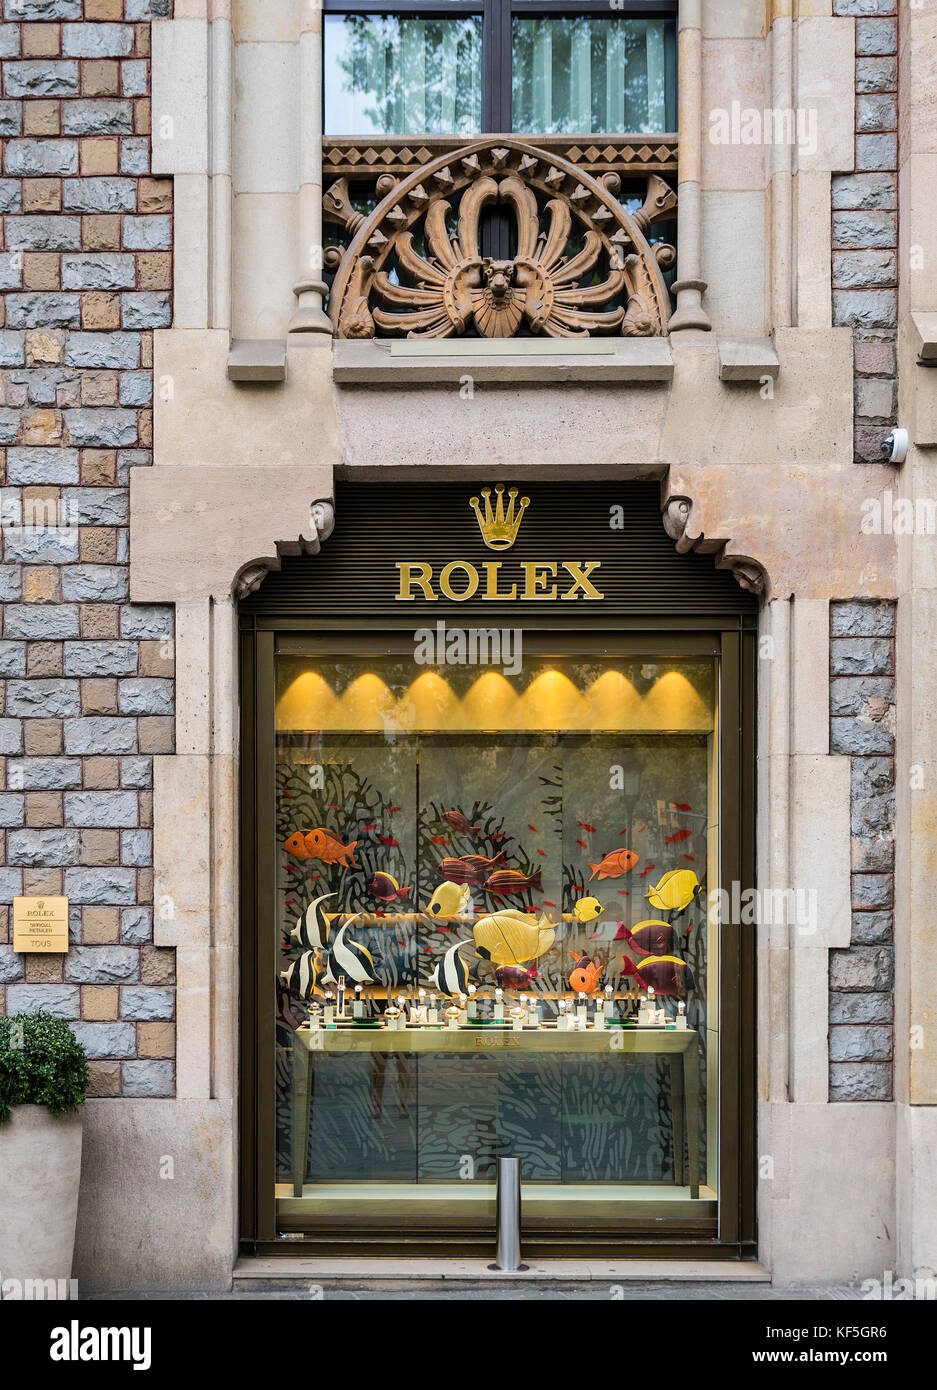 Official Rolex retail store, Barcelona, Spain, - Stock Image